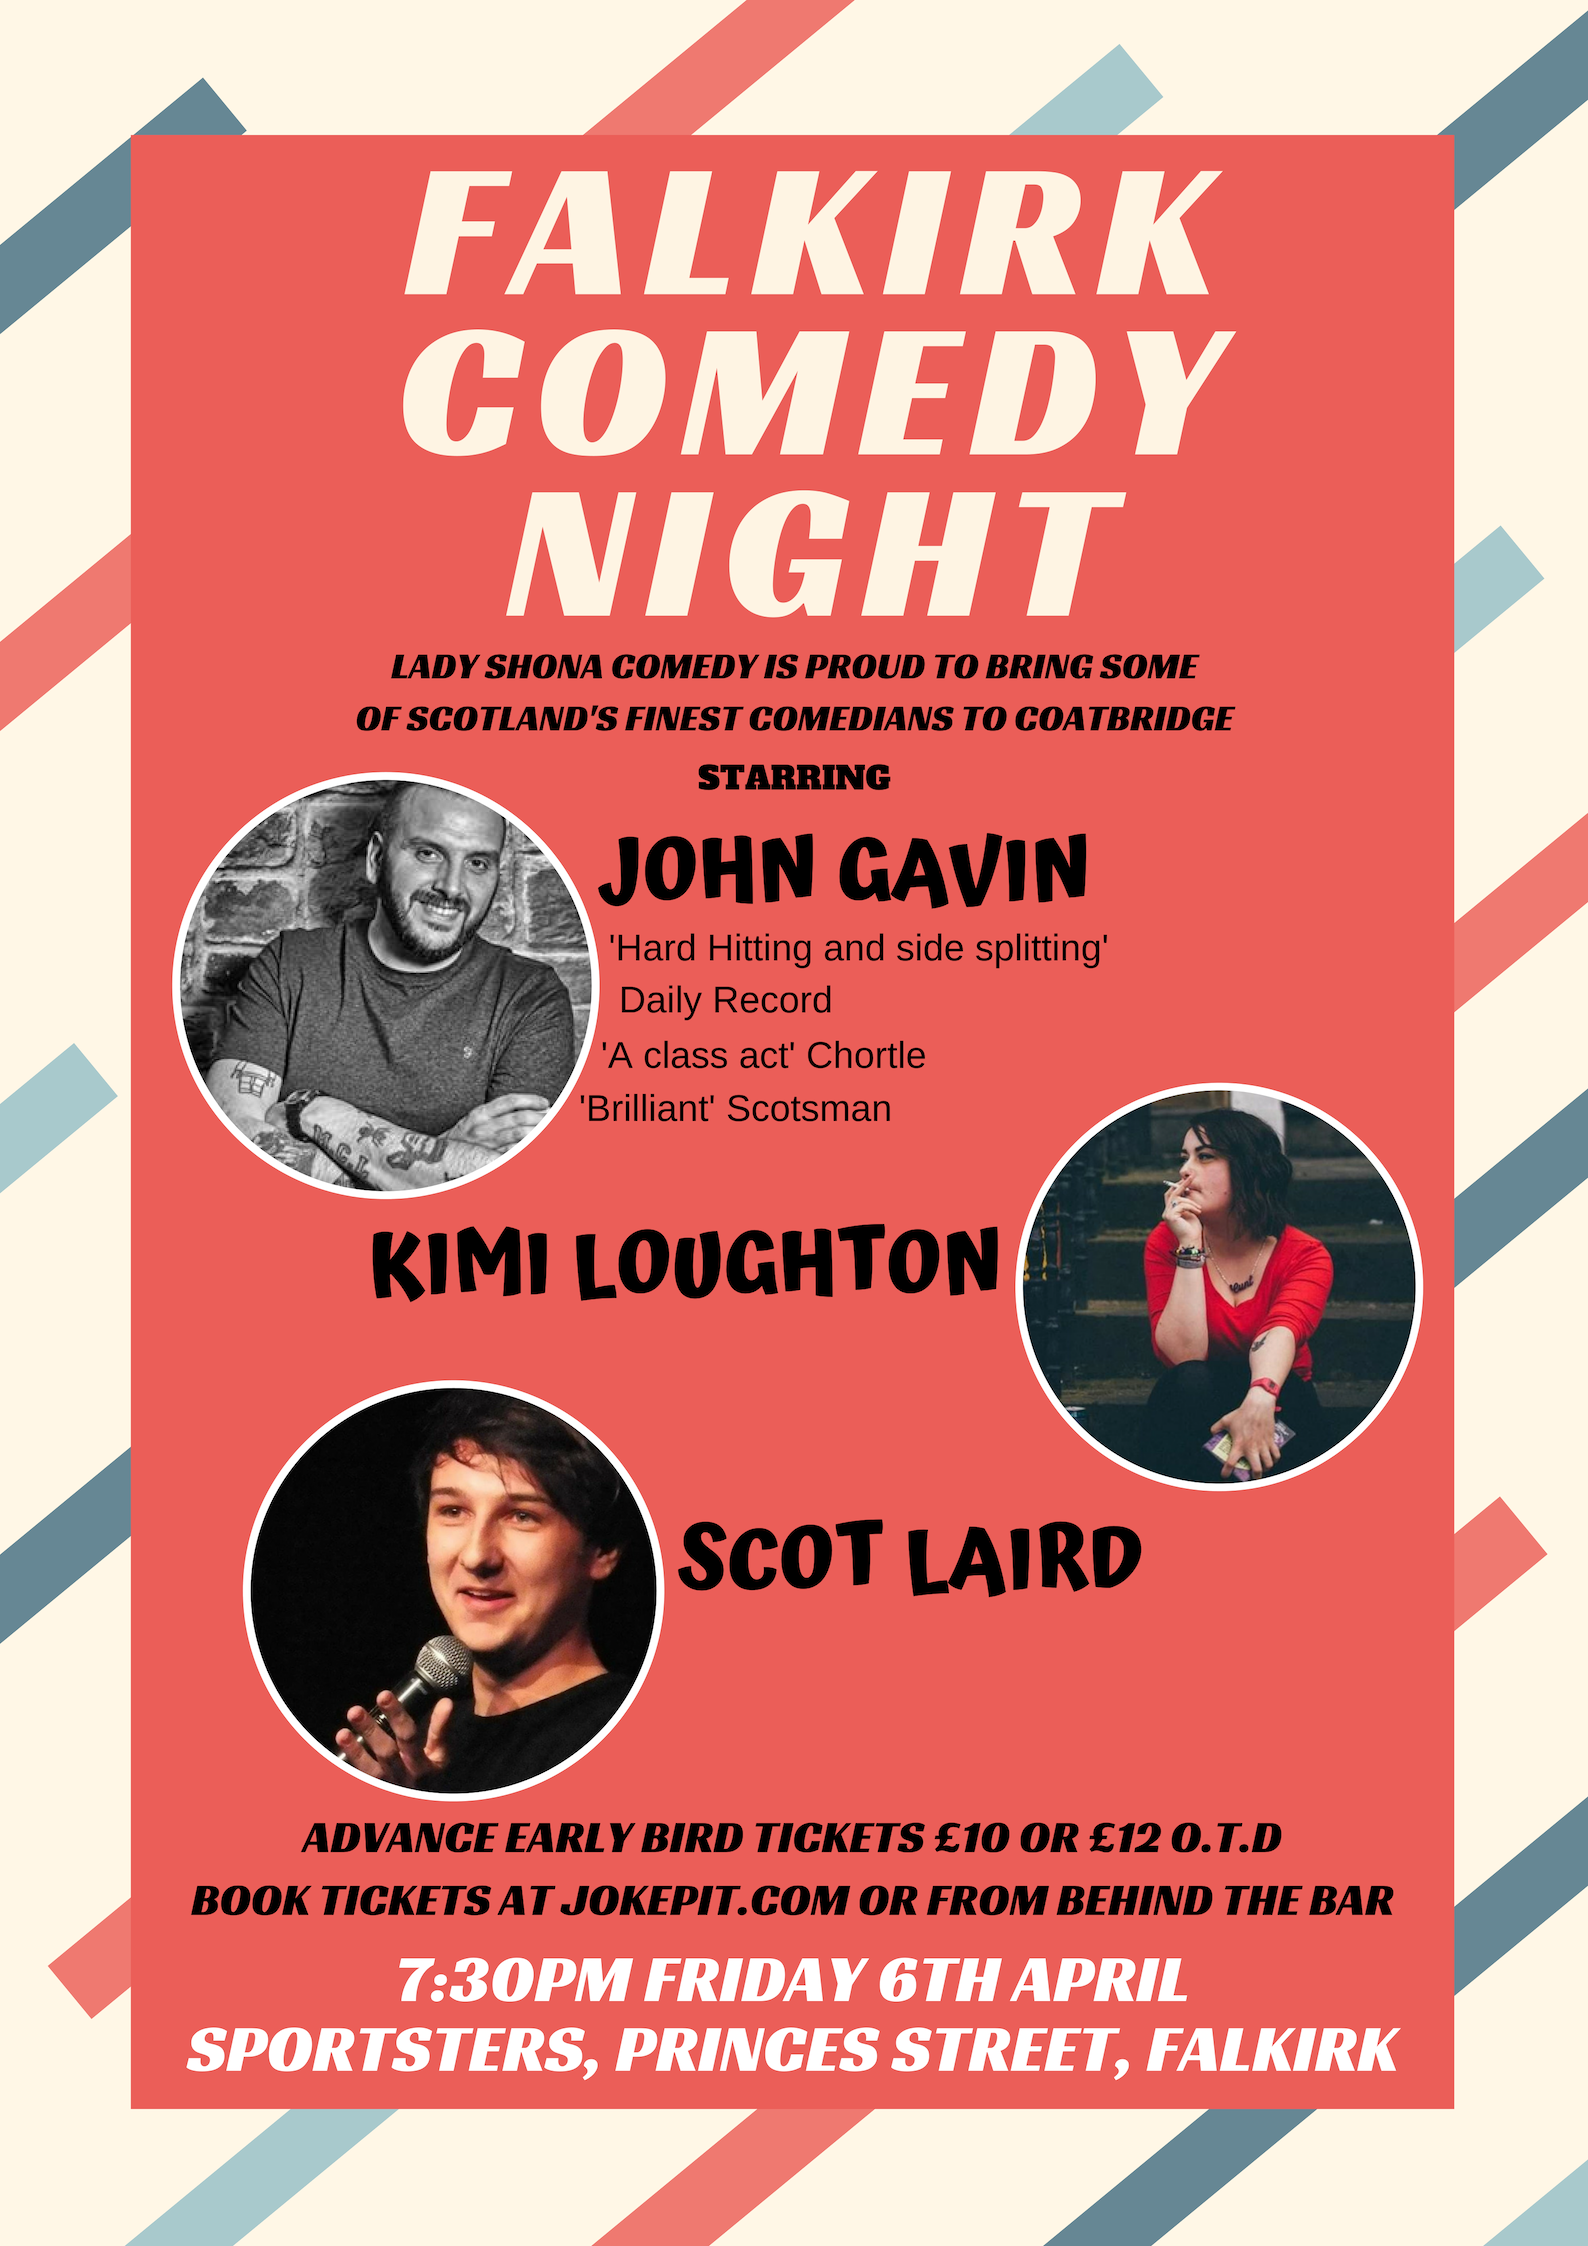 Copy of falkirk comedy night template